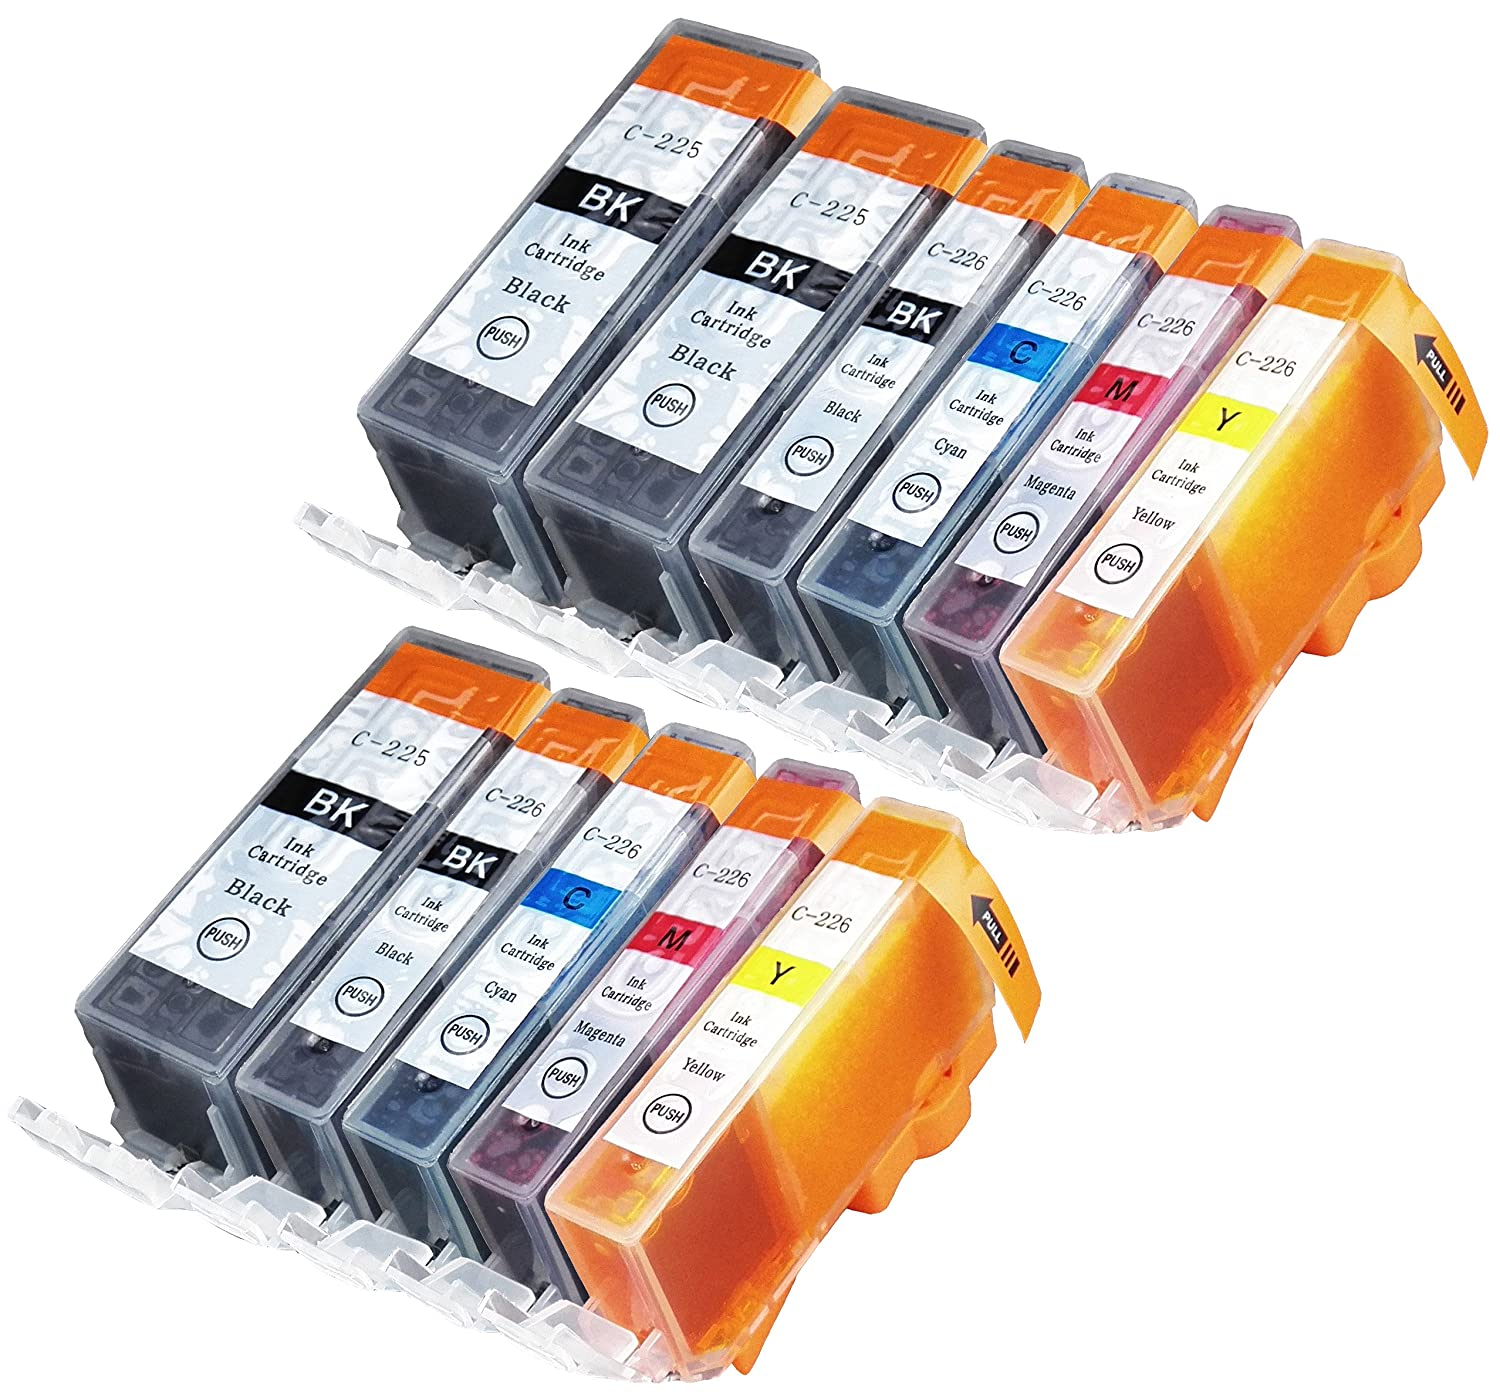 11 Pack Compatible Canon CLI-226 , PGI-225 3 Big Black, 2 Small Black, 2 Cyan, 2 Magenta, 2 Yellow for use with Canon PIXMA iP4820, PIXMA iP4920, PIXMA iX6520, PIXMA MG5120, PIXMA MG5220, PIXMA MG5320, PIXMA MG6120, PIXMA MG6220, PIXMA MG8120, PIXMA MG8120